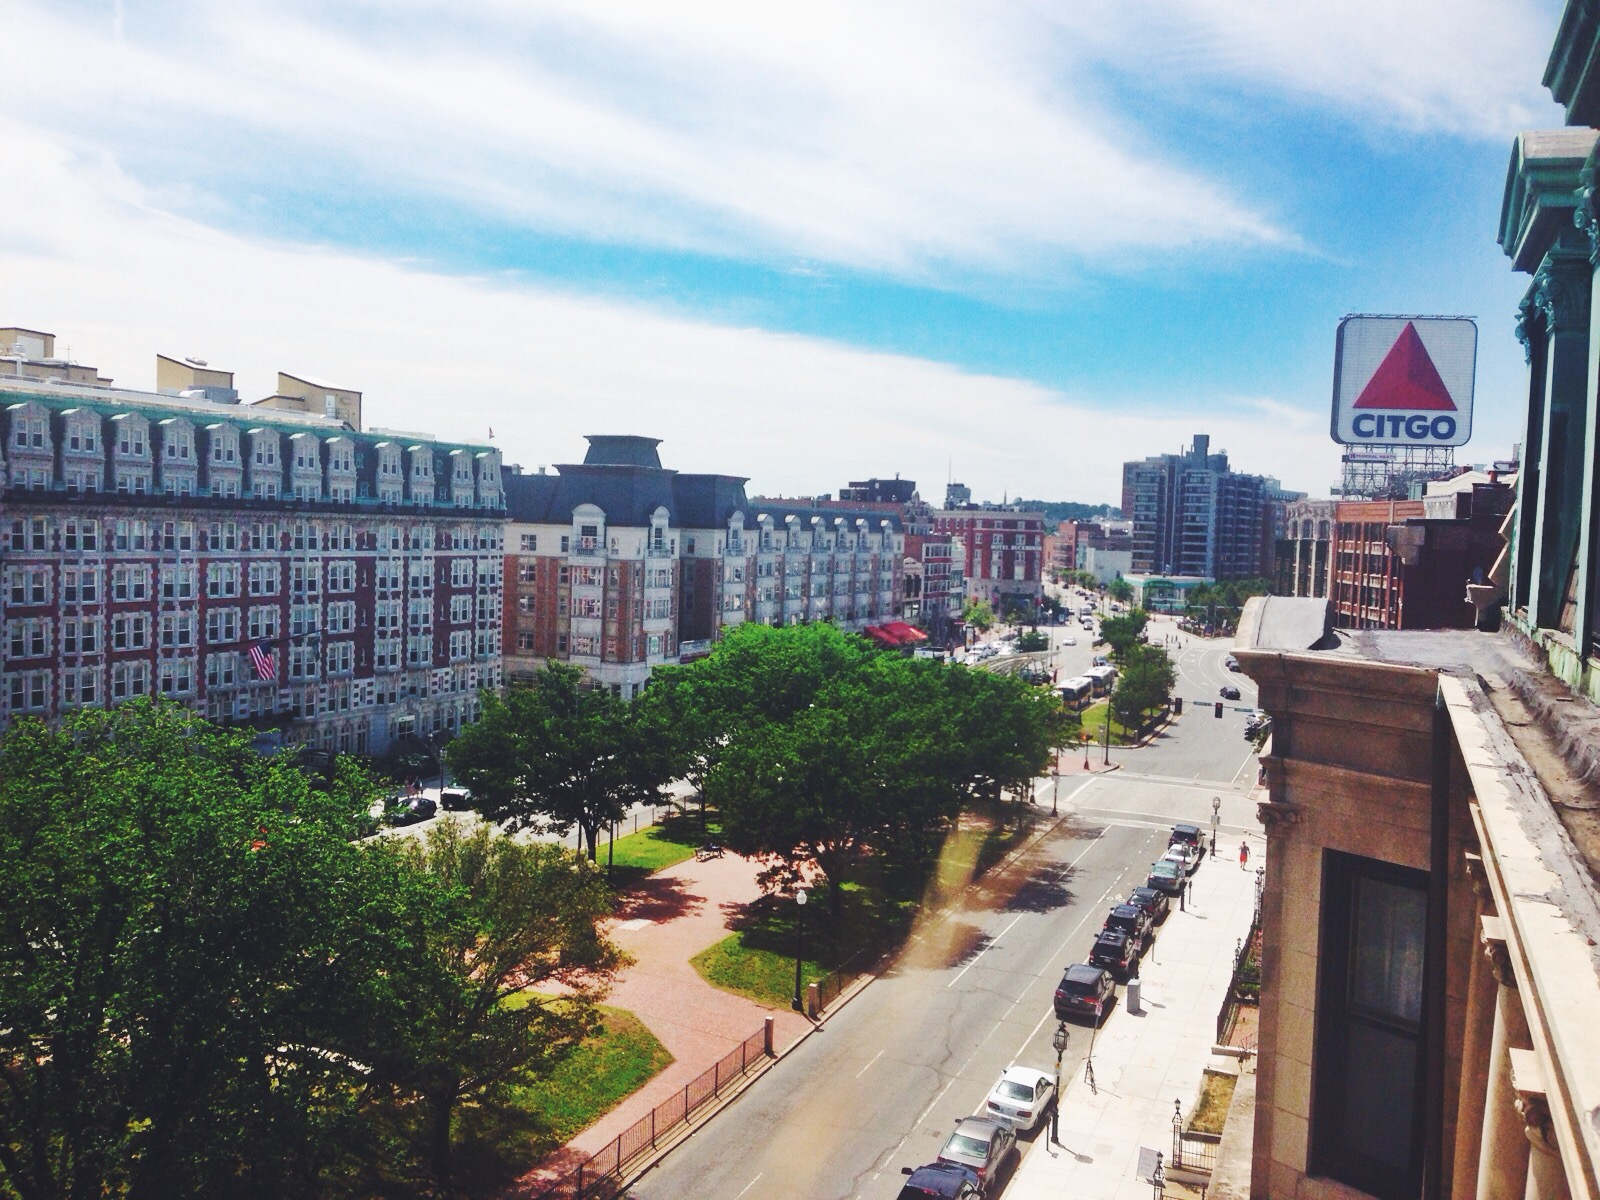 {A friend's lovely rooftop view of the Citgo sign}